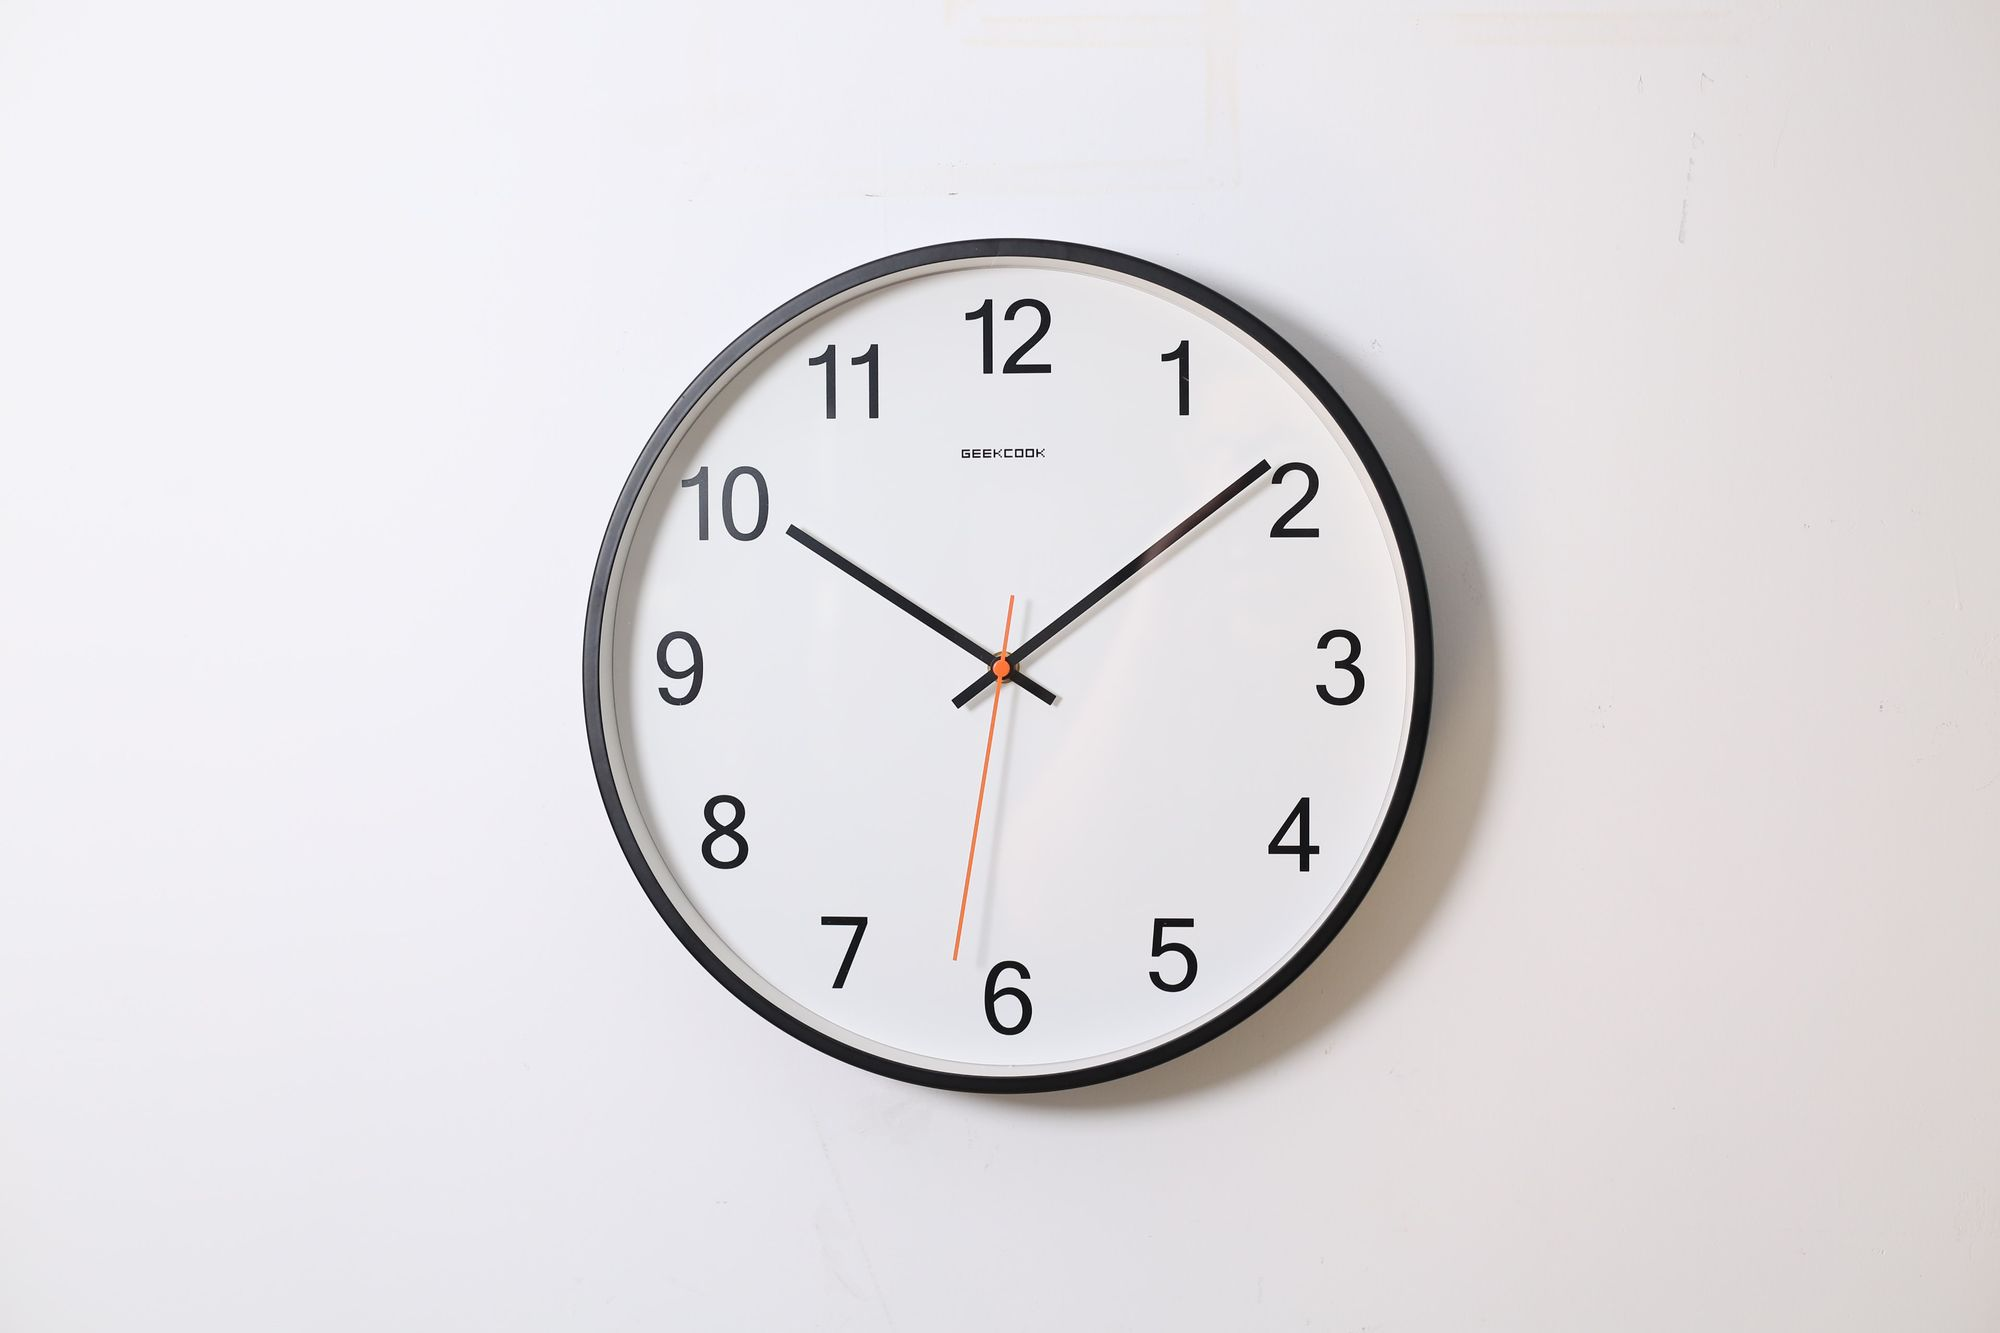 Analogue clock - Are you one time?